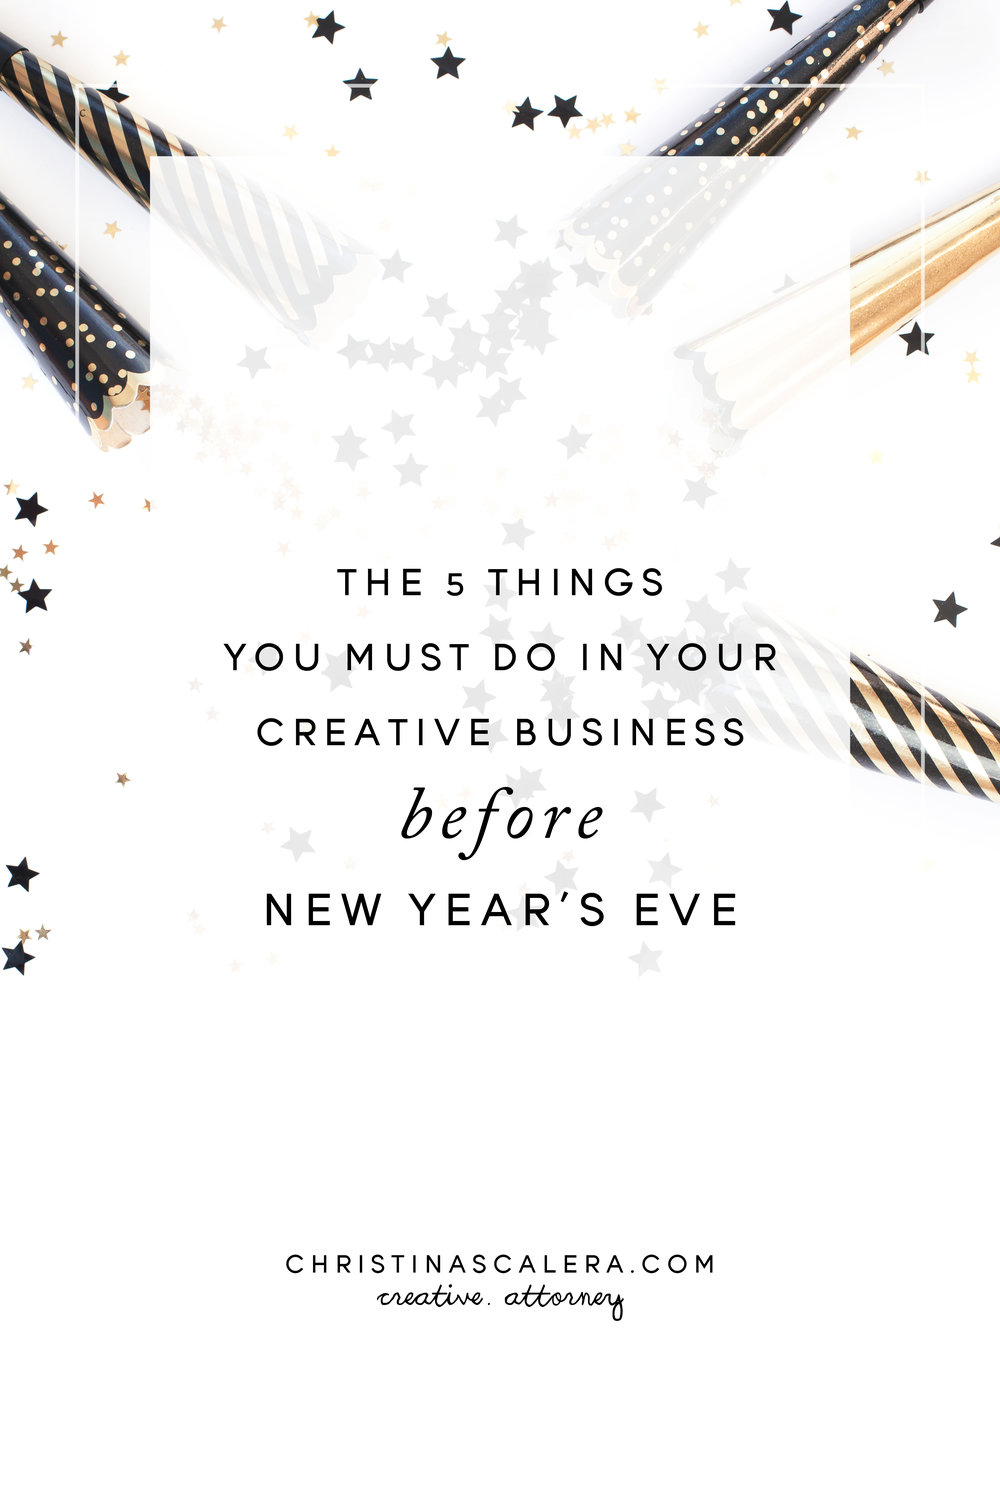 Here are 5 things you must do in your creative business before New Year's Eve.